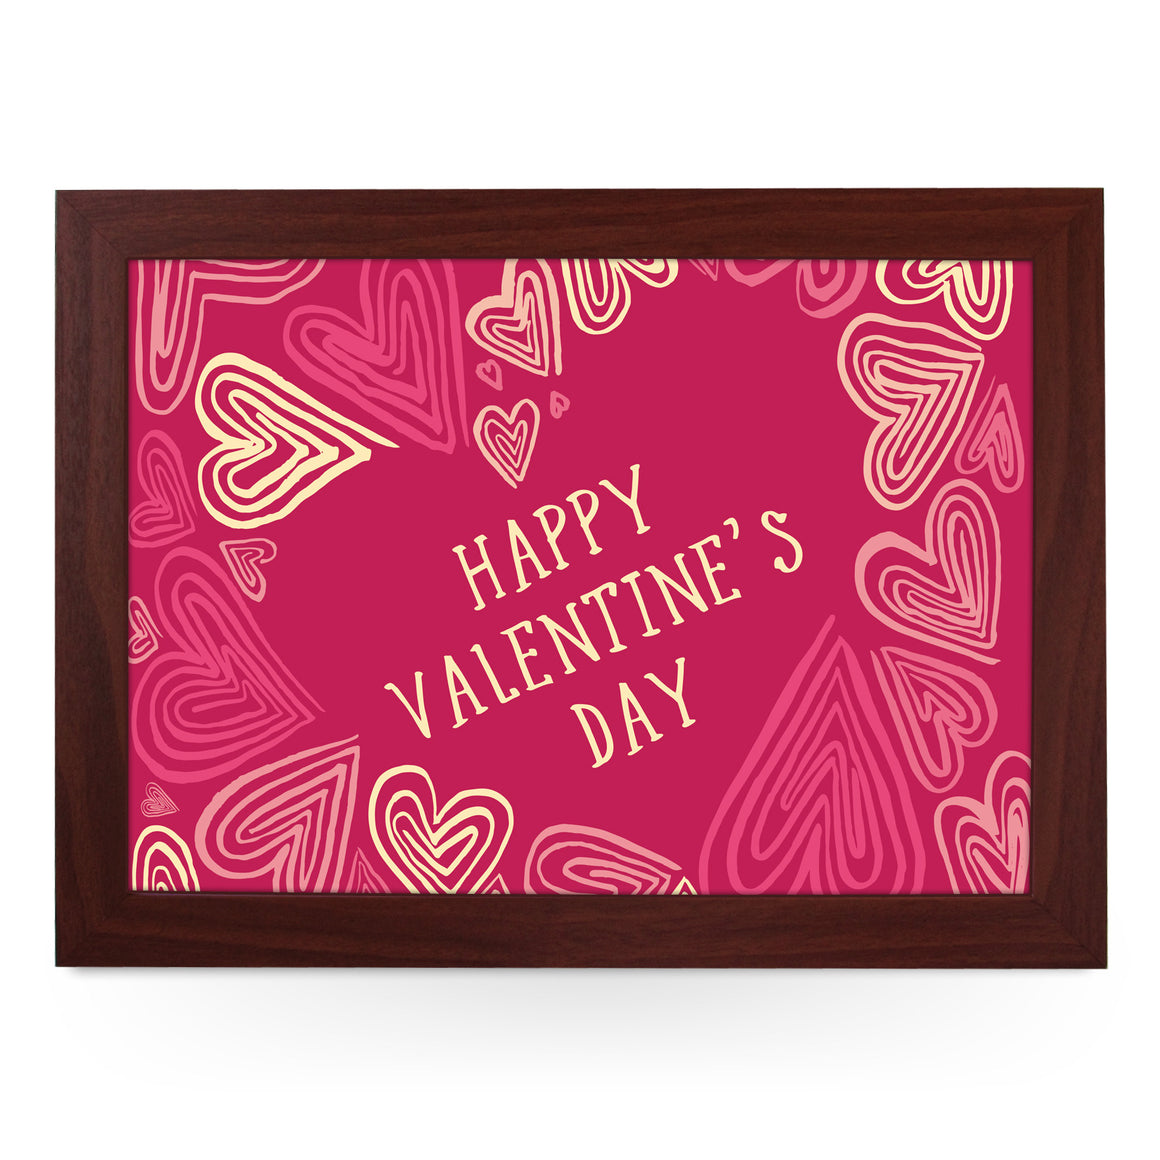 Happy Valentine's Day Drawn Hearts Lap Tray - L0457